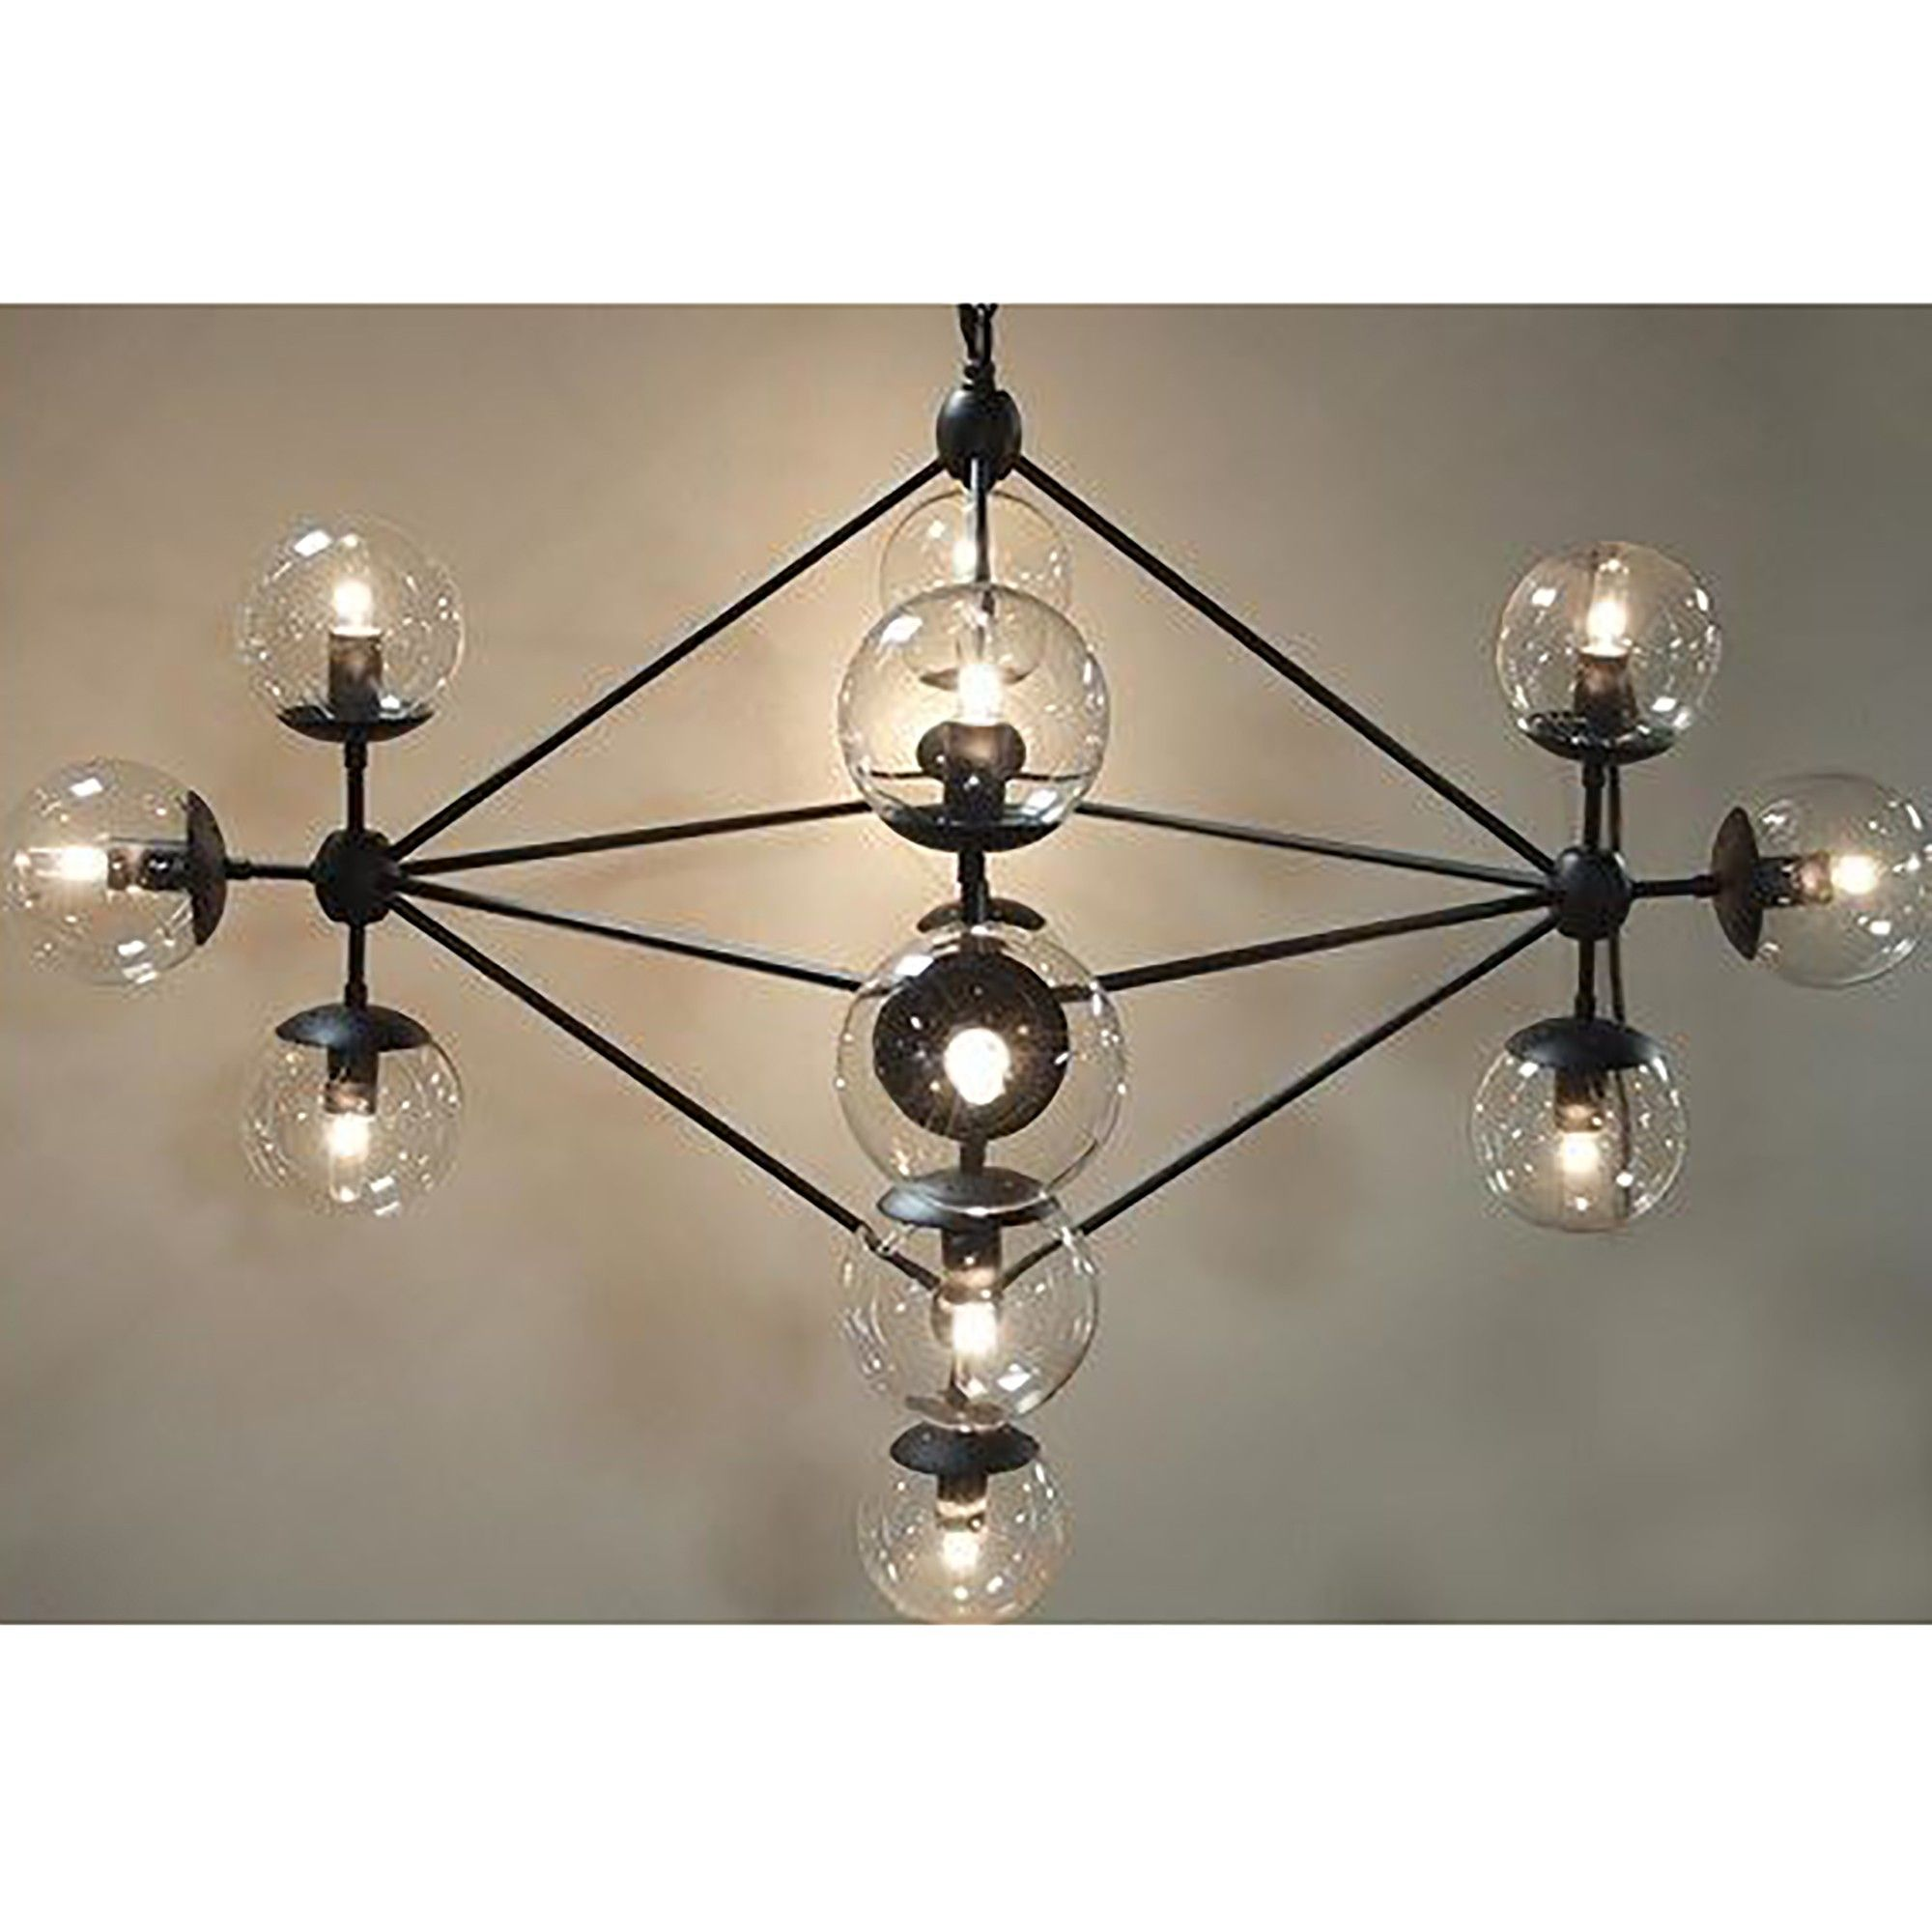 Particles Chandelier Small Chandelier Small Small Chandelier Modern Linear Chandelier